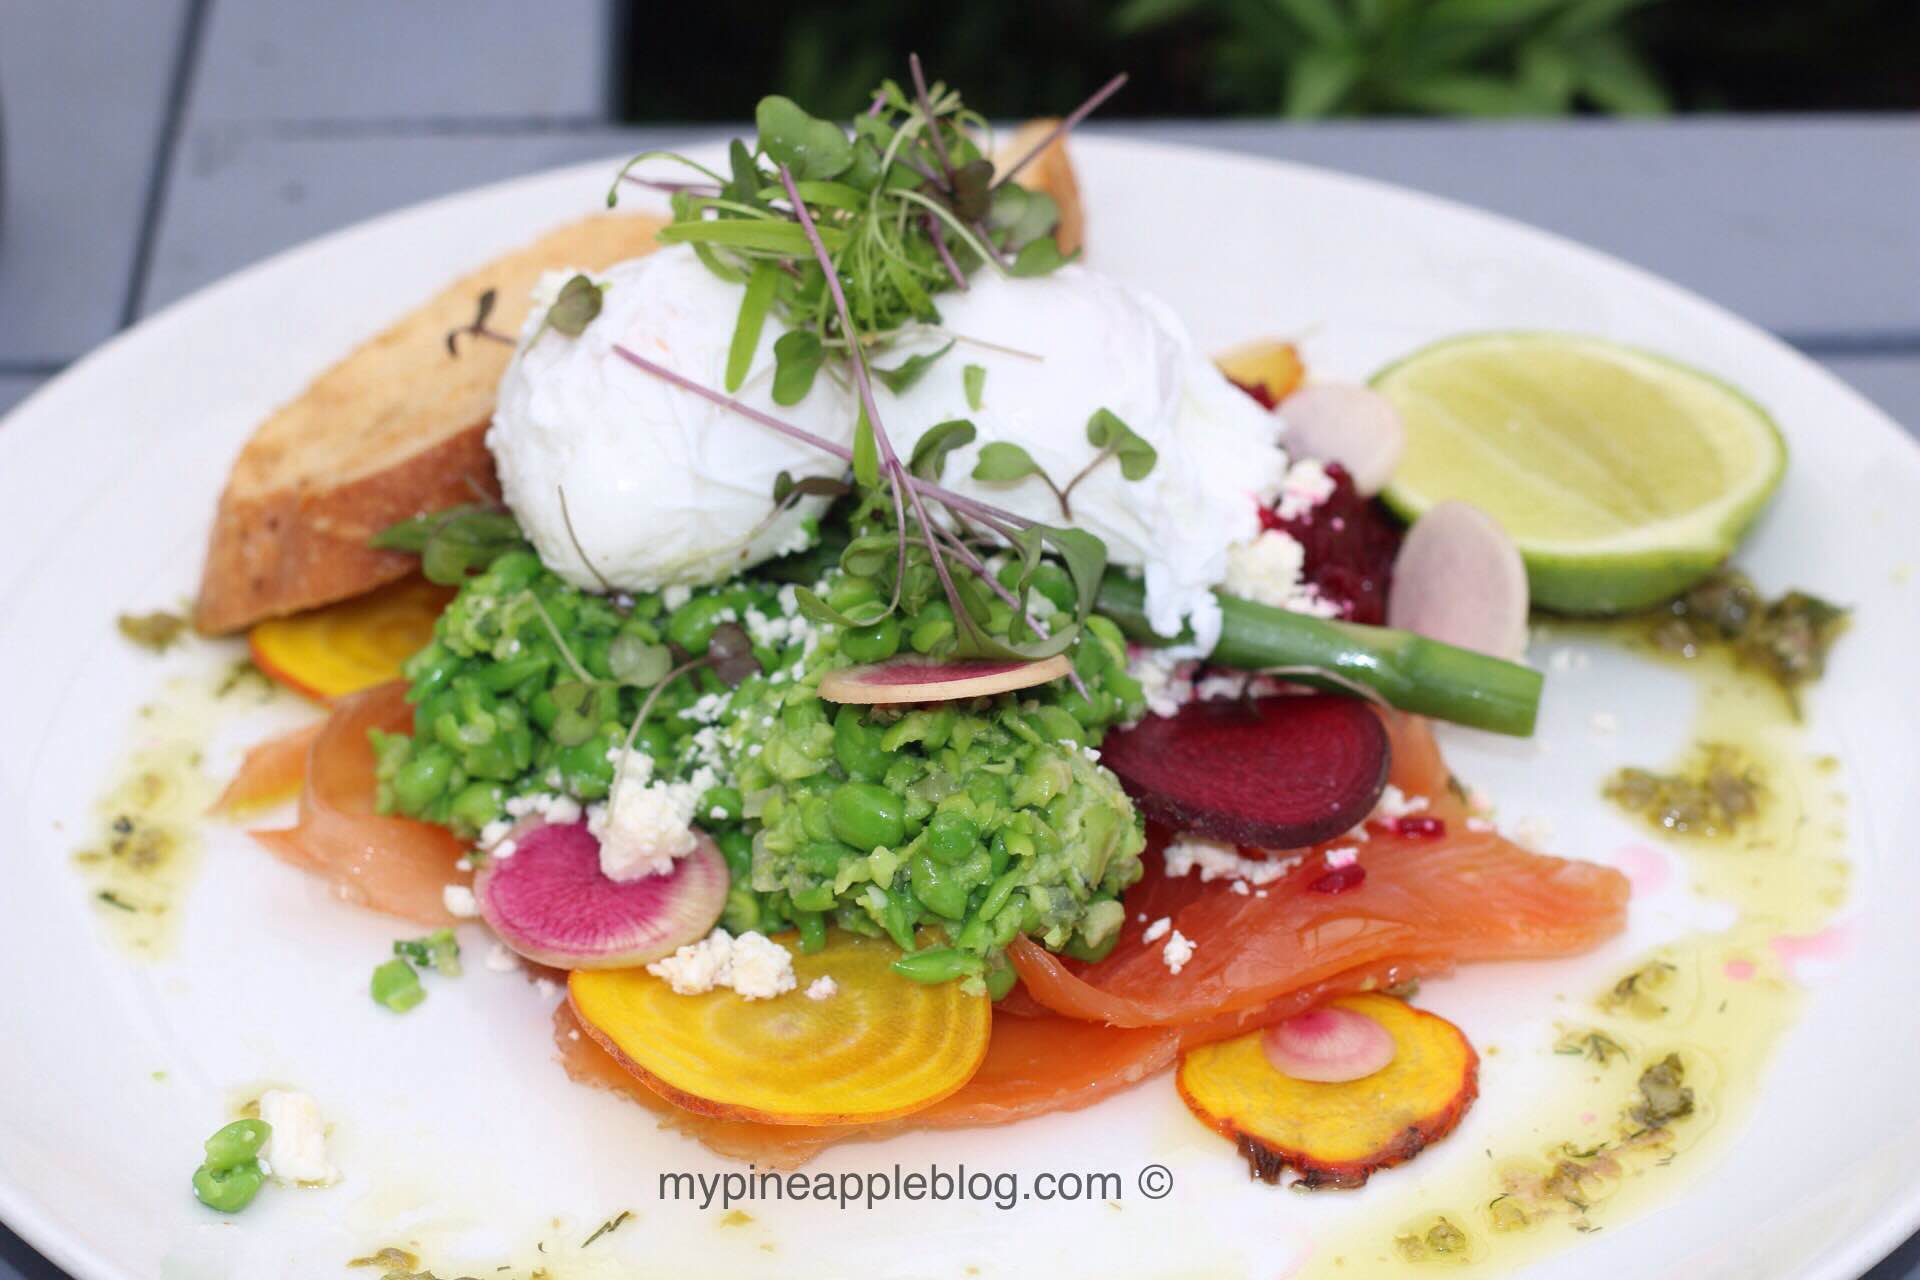 Brunch - Tall Timber's salmon gravlax with beetroot, smashed peas, poached eggs and feta